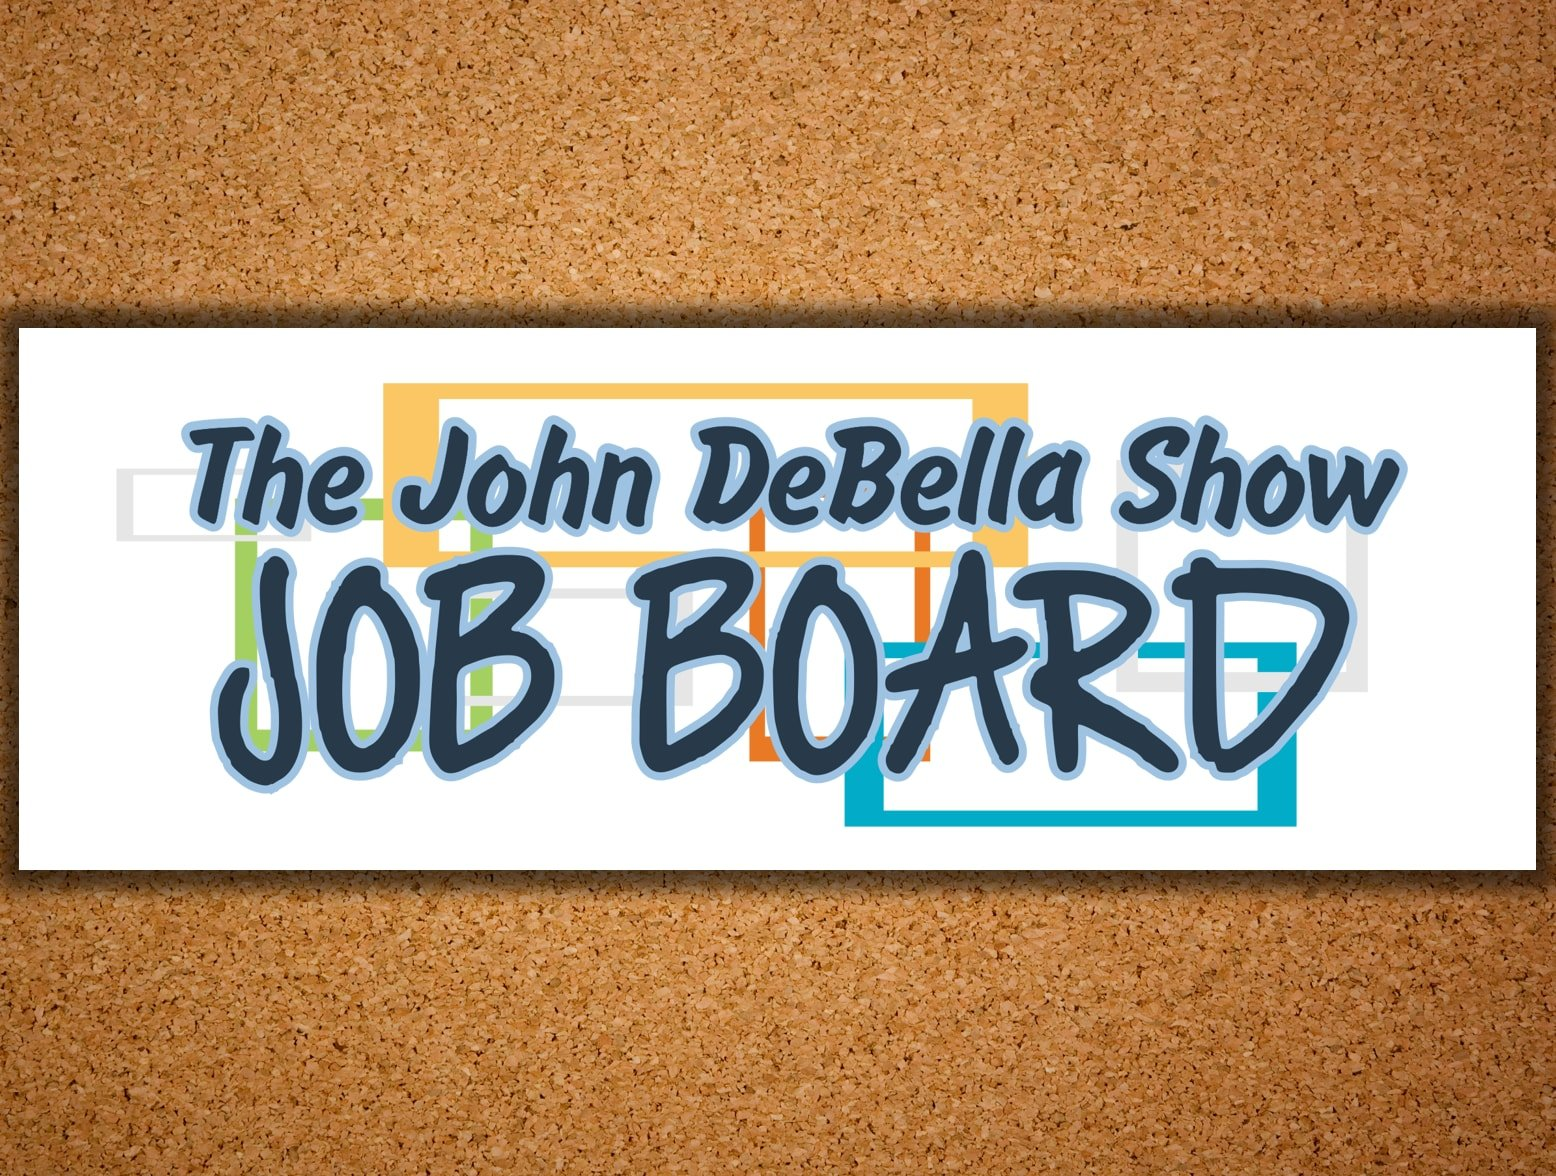 The John Debella Show Job Board